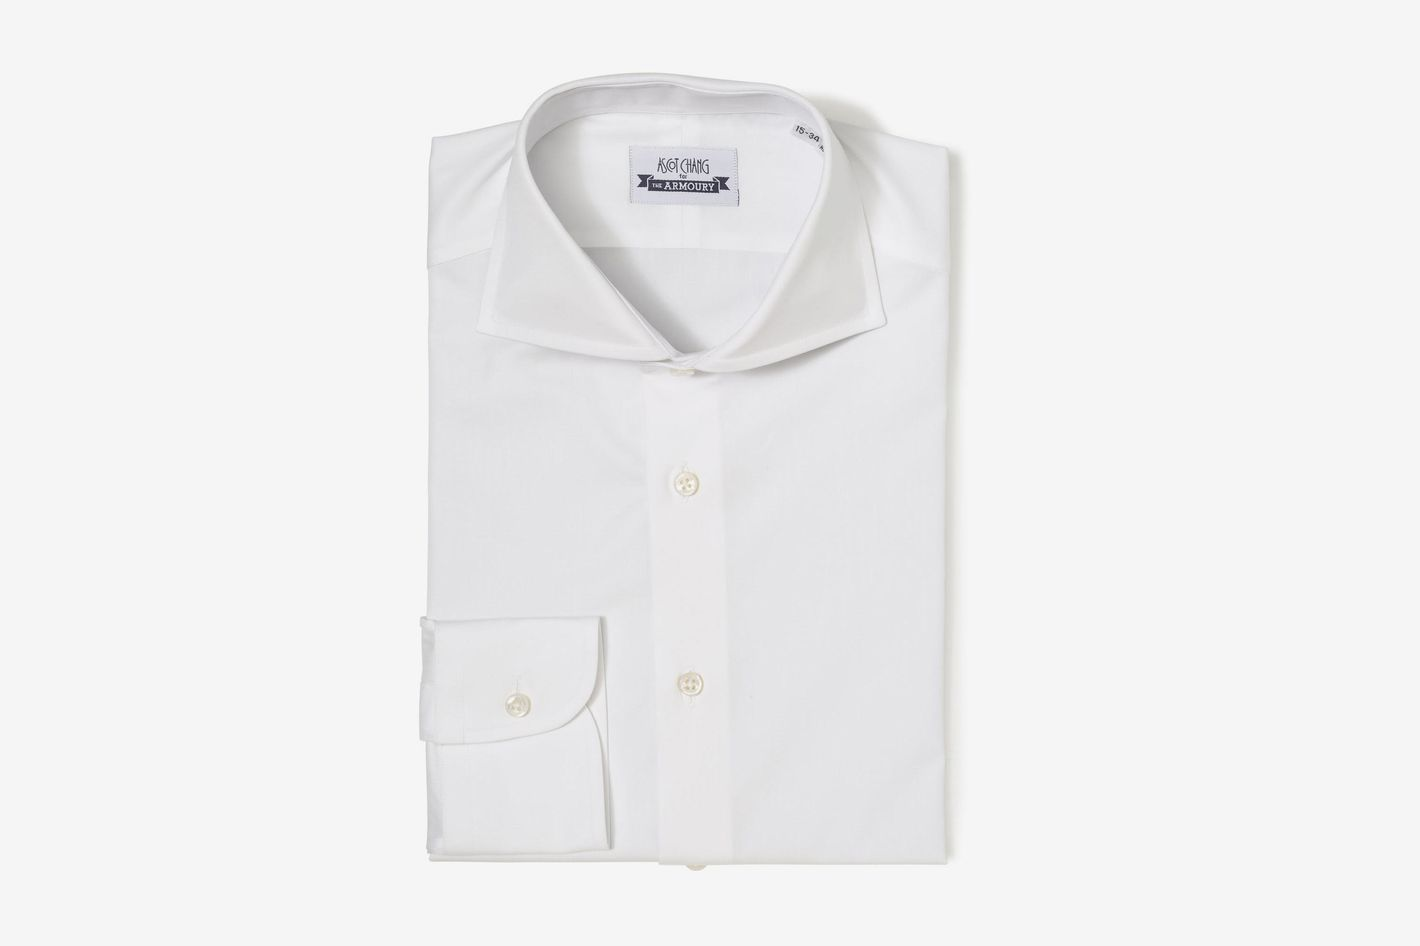 72aba34a 11 Best White Button-down Dress Shirts for Men: Oxfords 2018